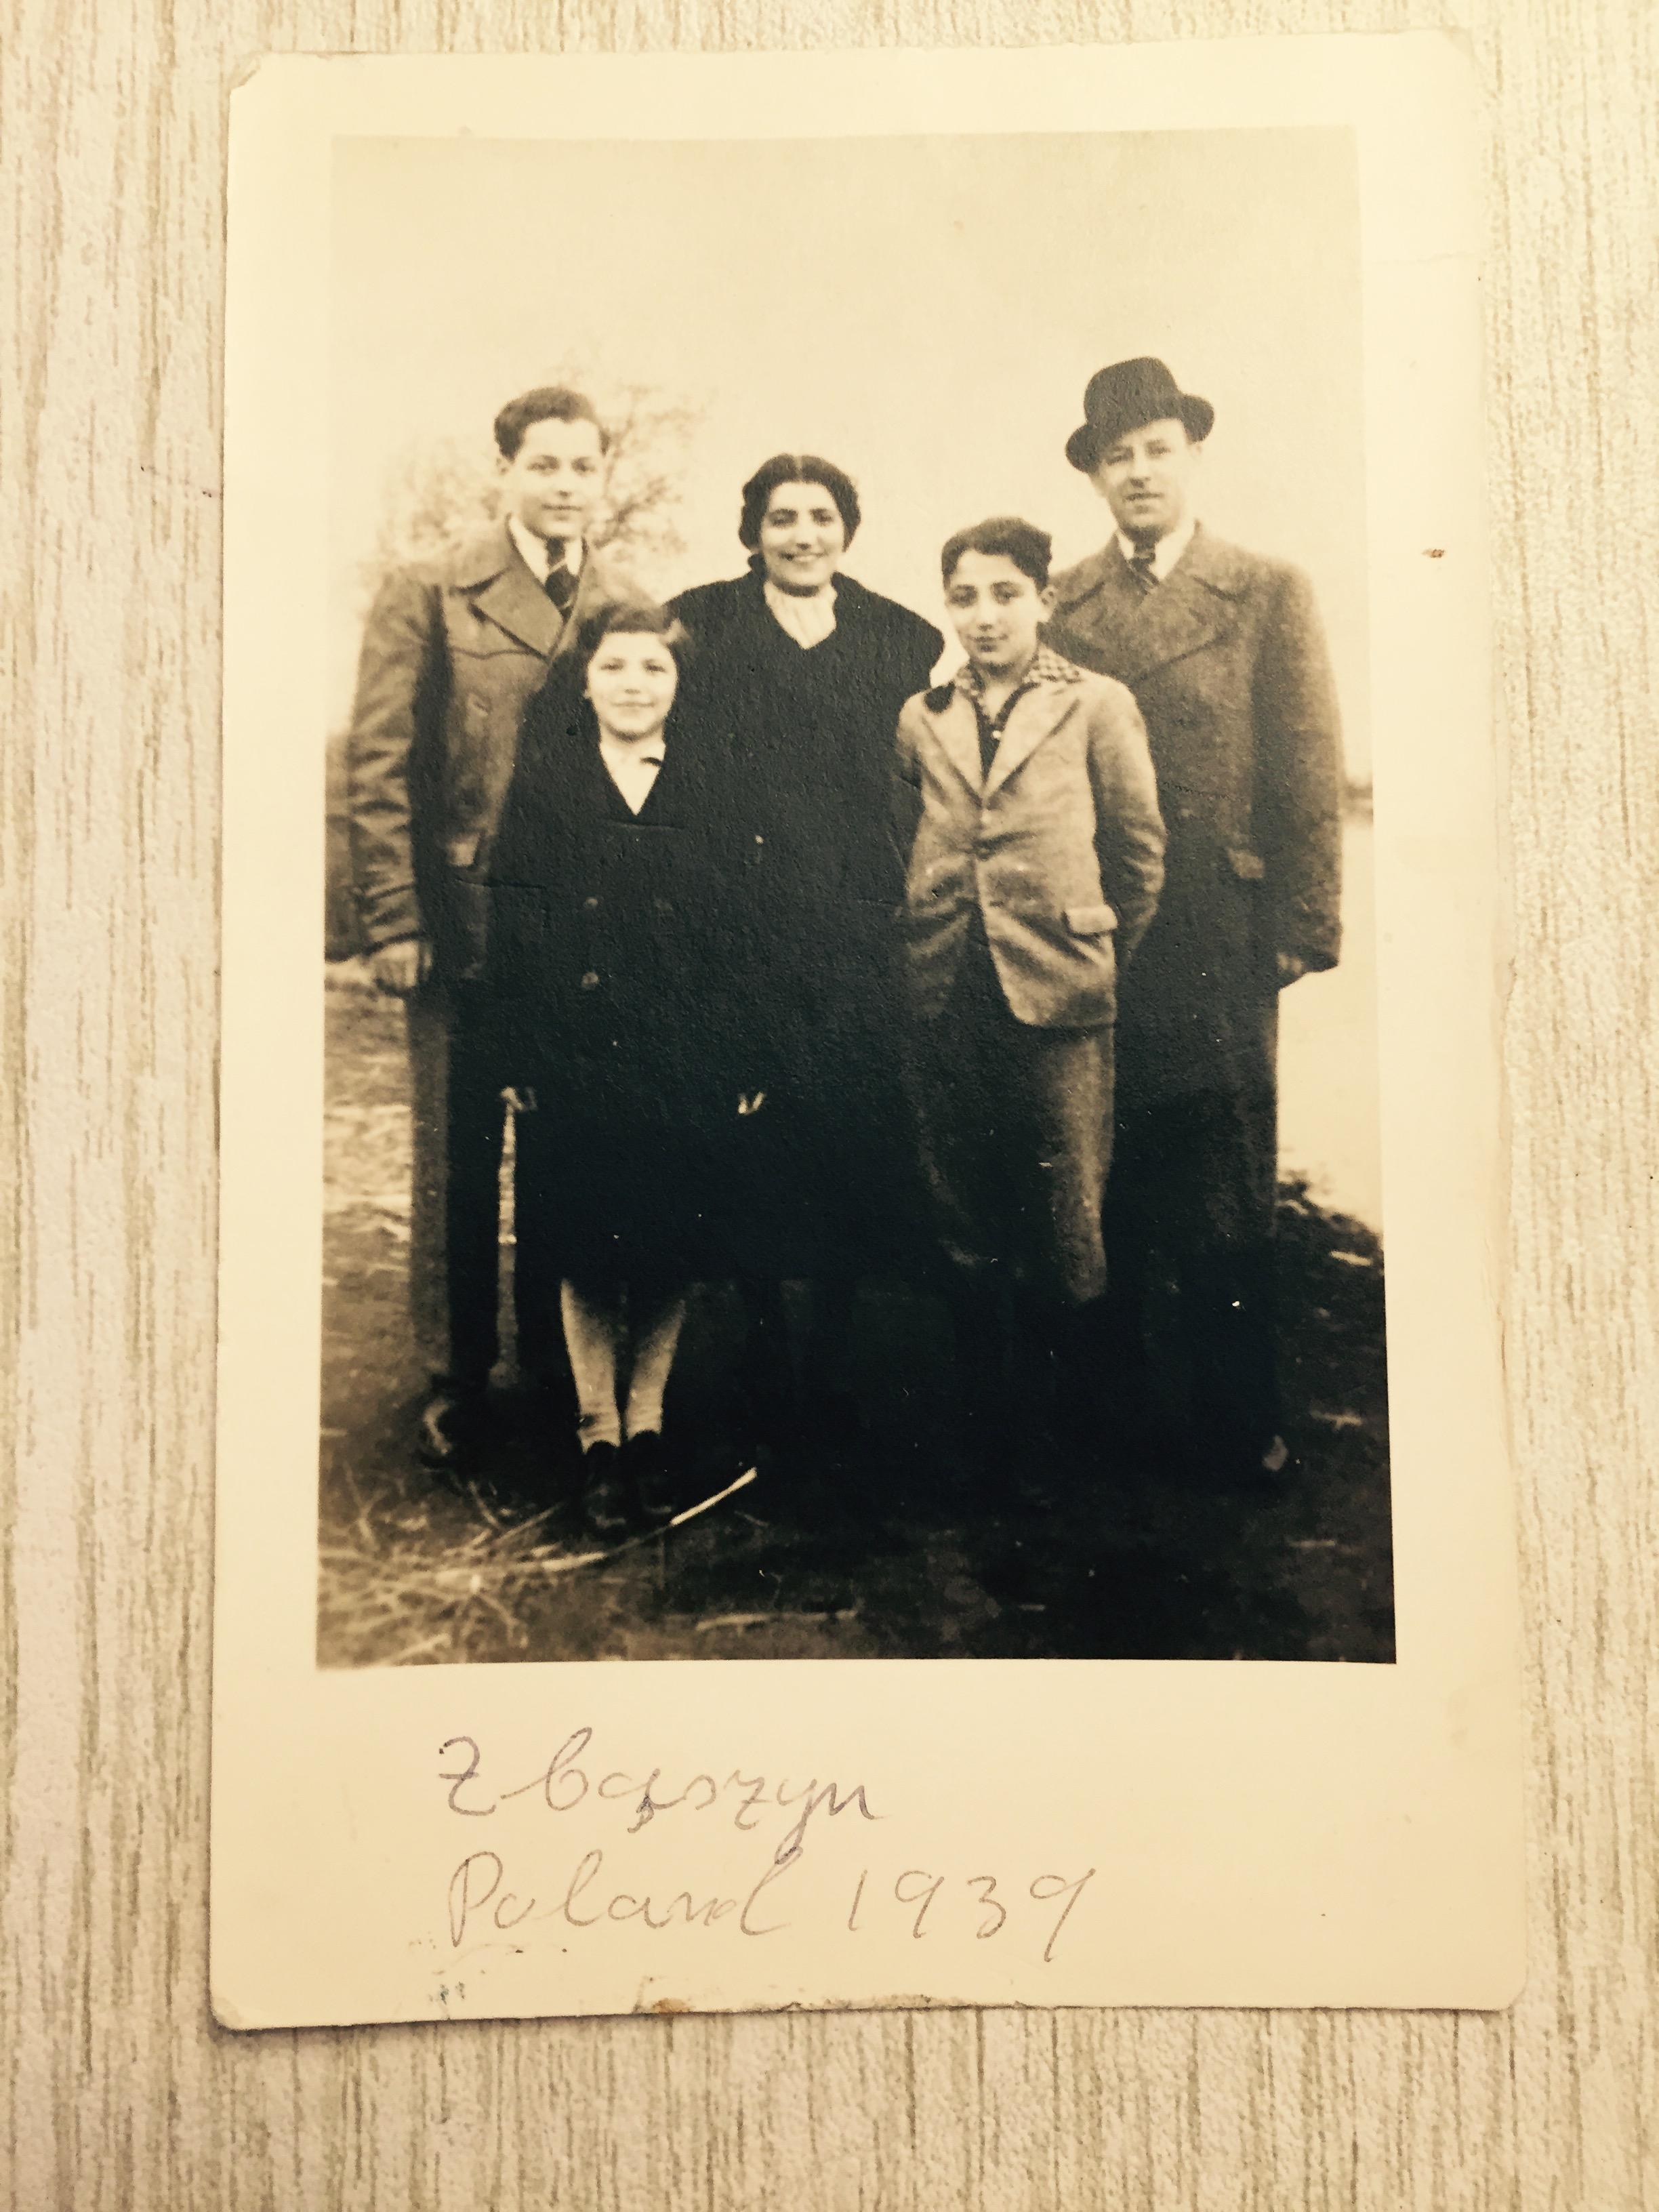 "Leo and Sabine Adler with their children Norbert, Fedor, and Rita in Zbaszyn, 1939. Reprint free of charge, provided due credit is given: ""This photograph is the property of the Berger family."""